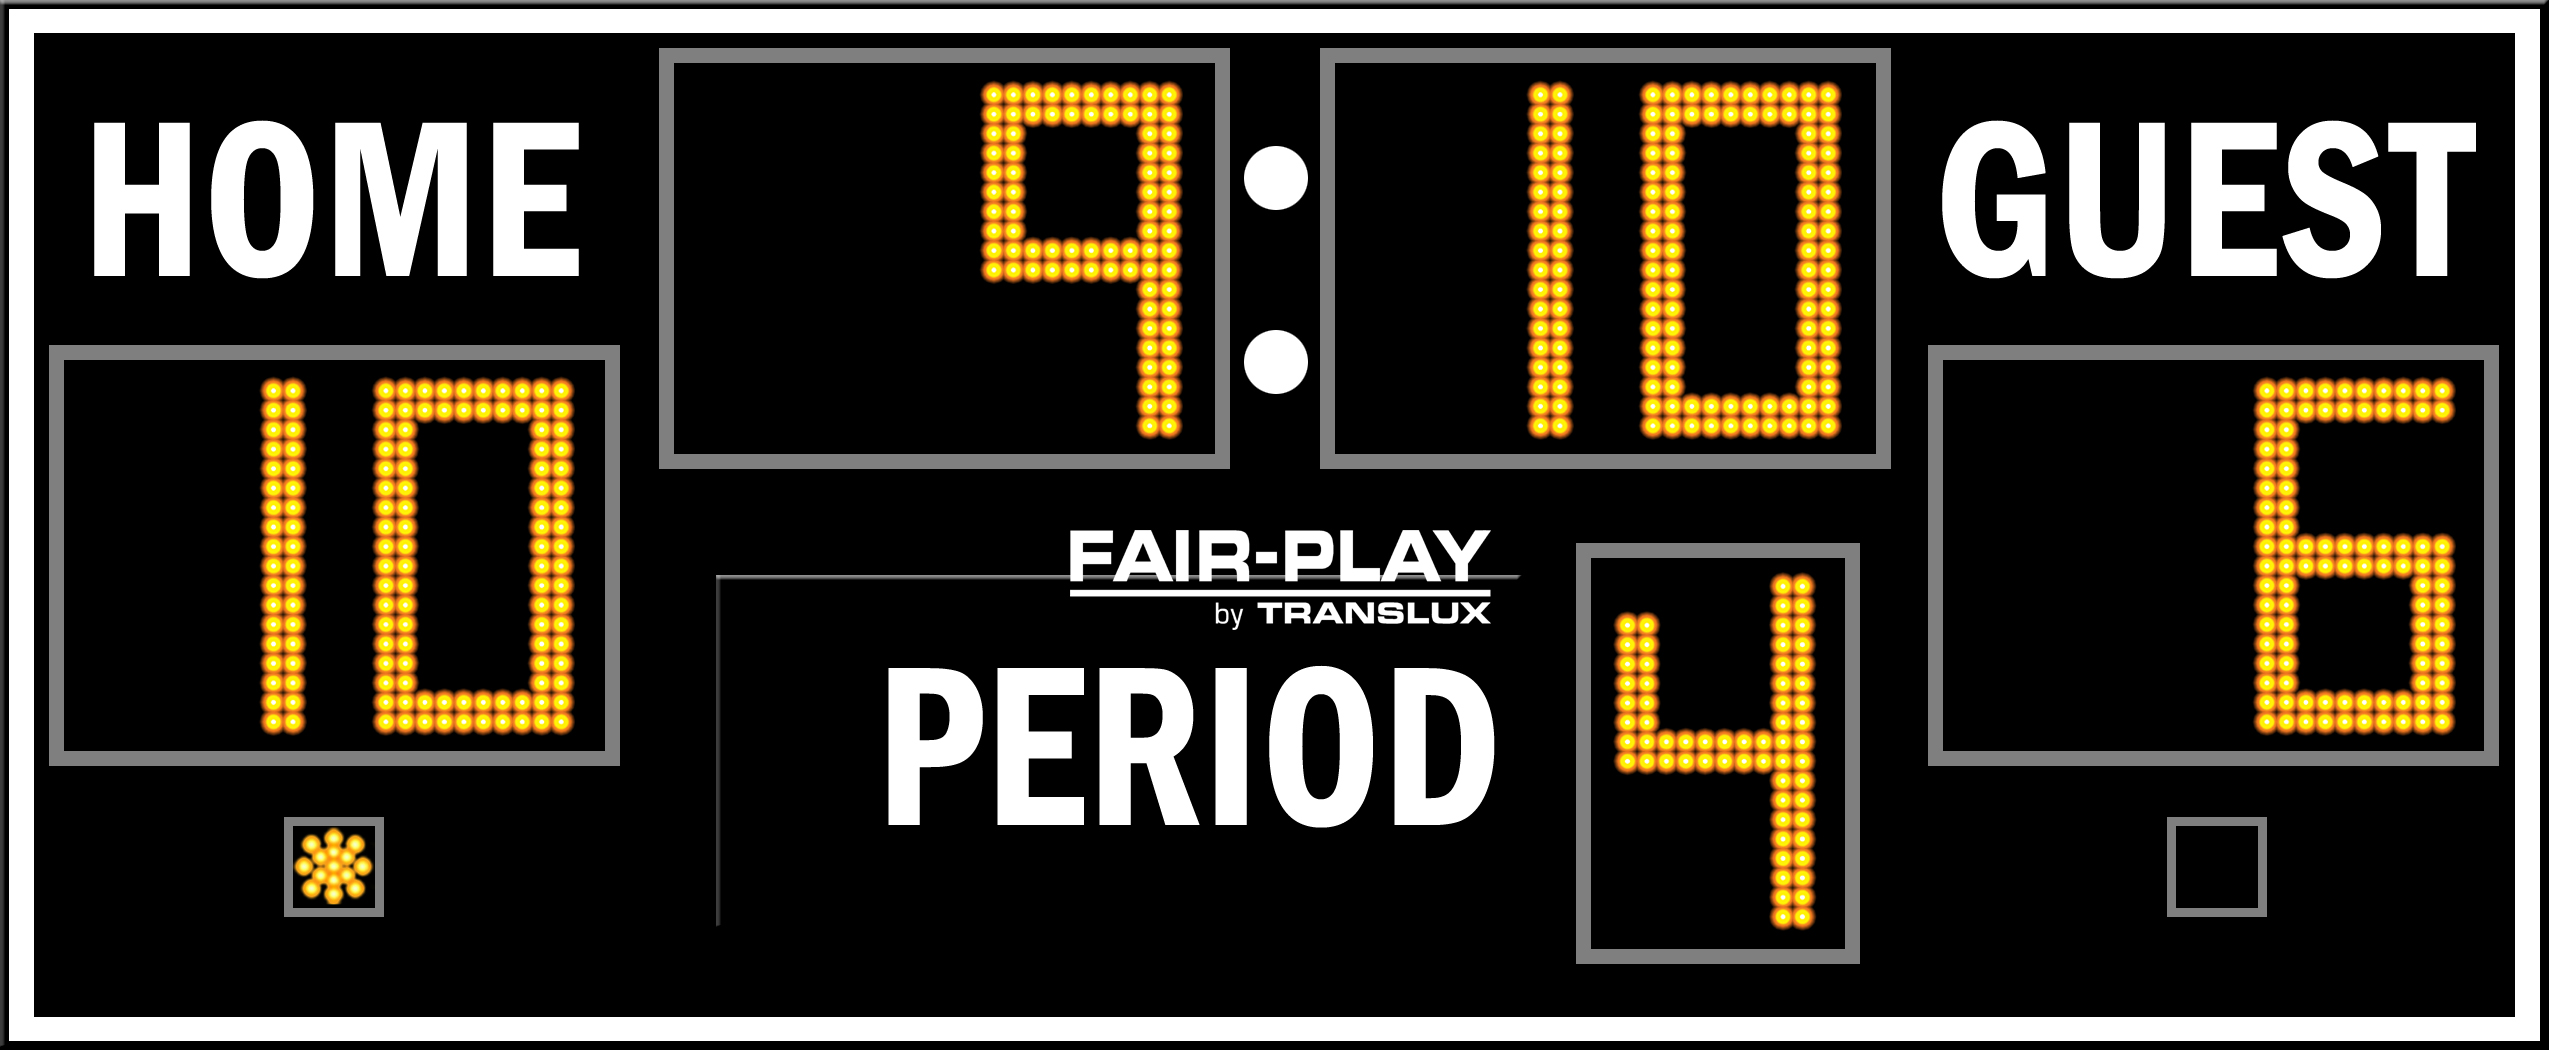 First Half Of A Football Game Scoreboard Clipart.